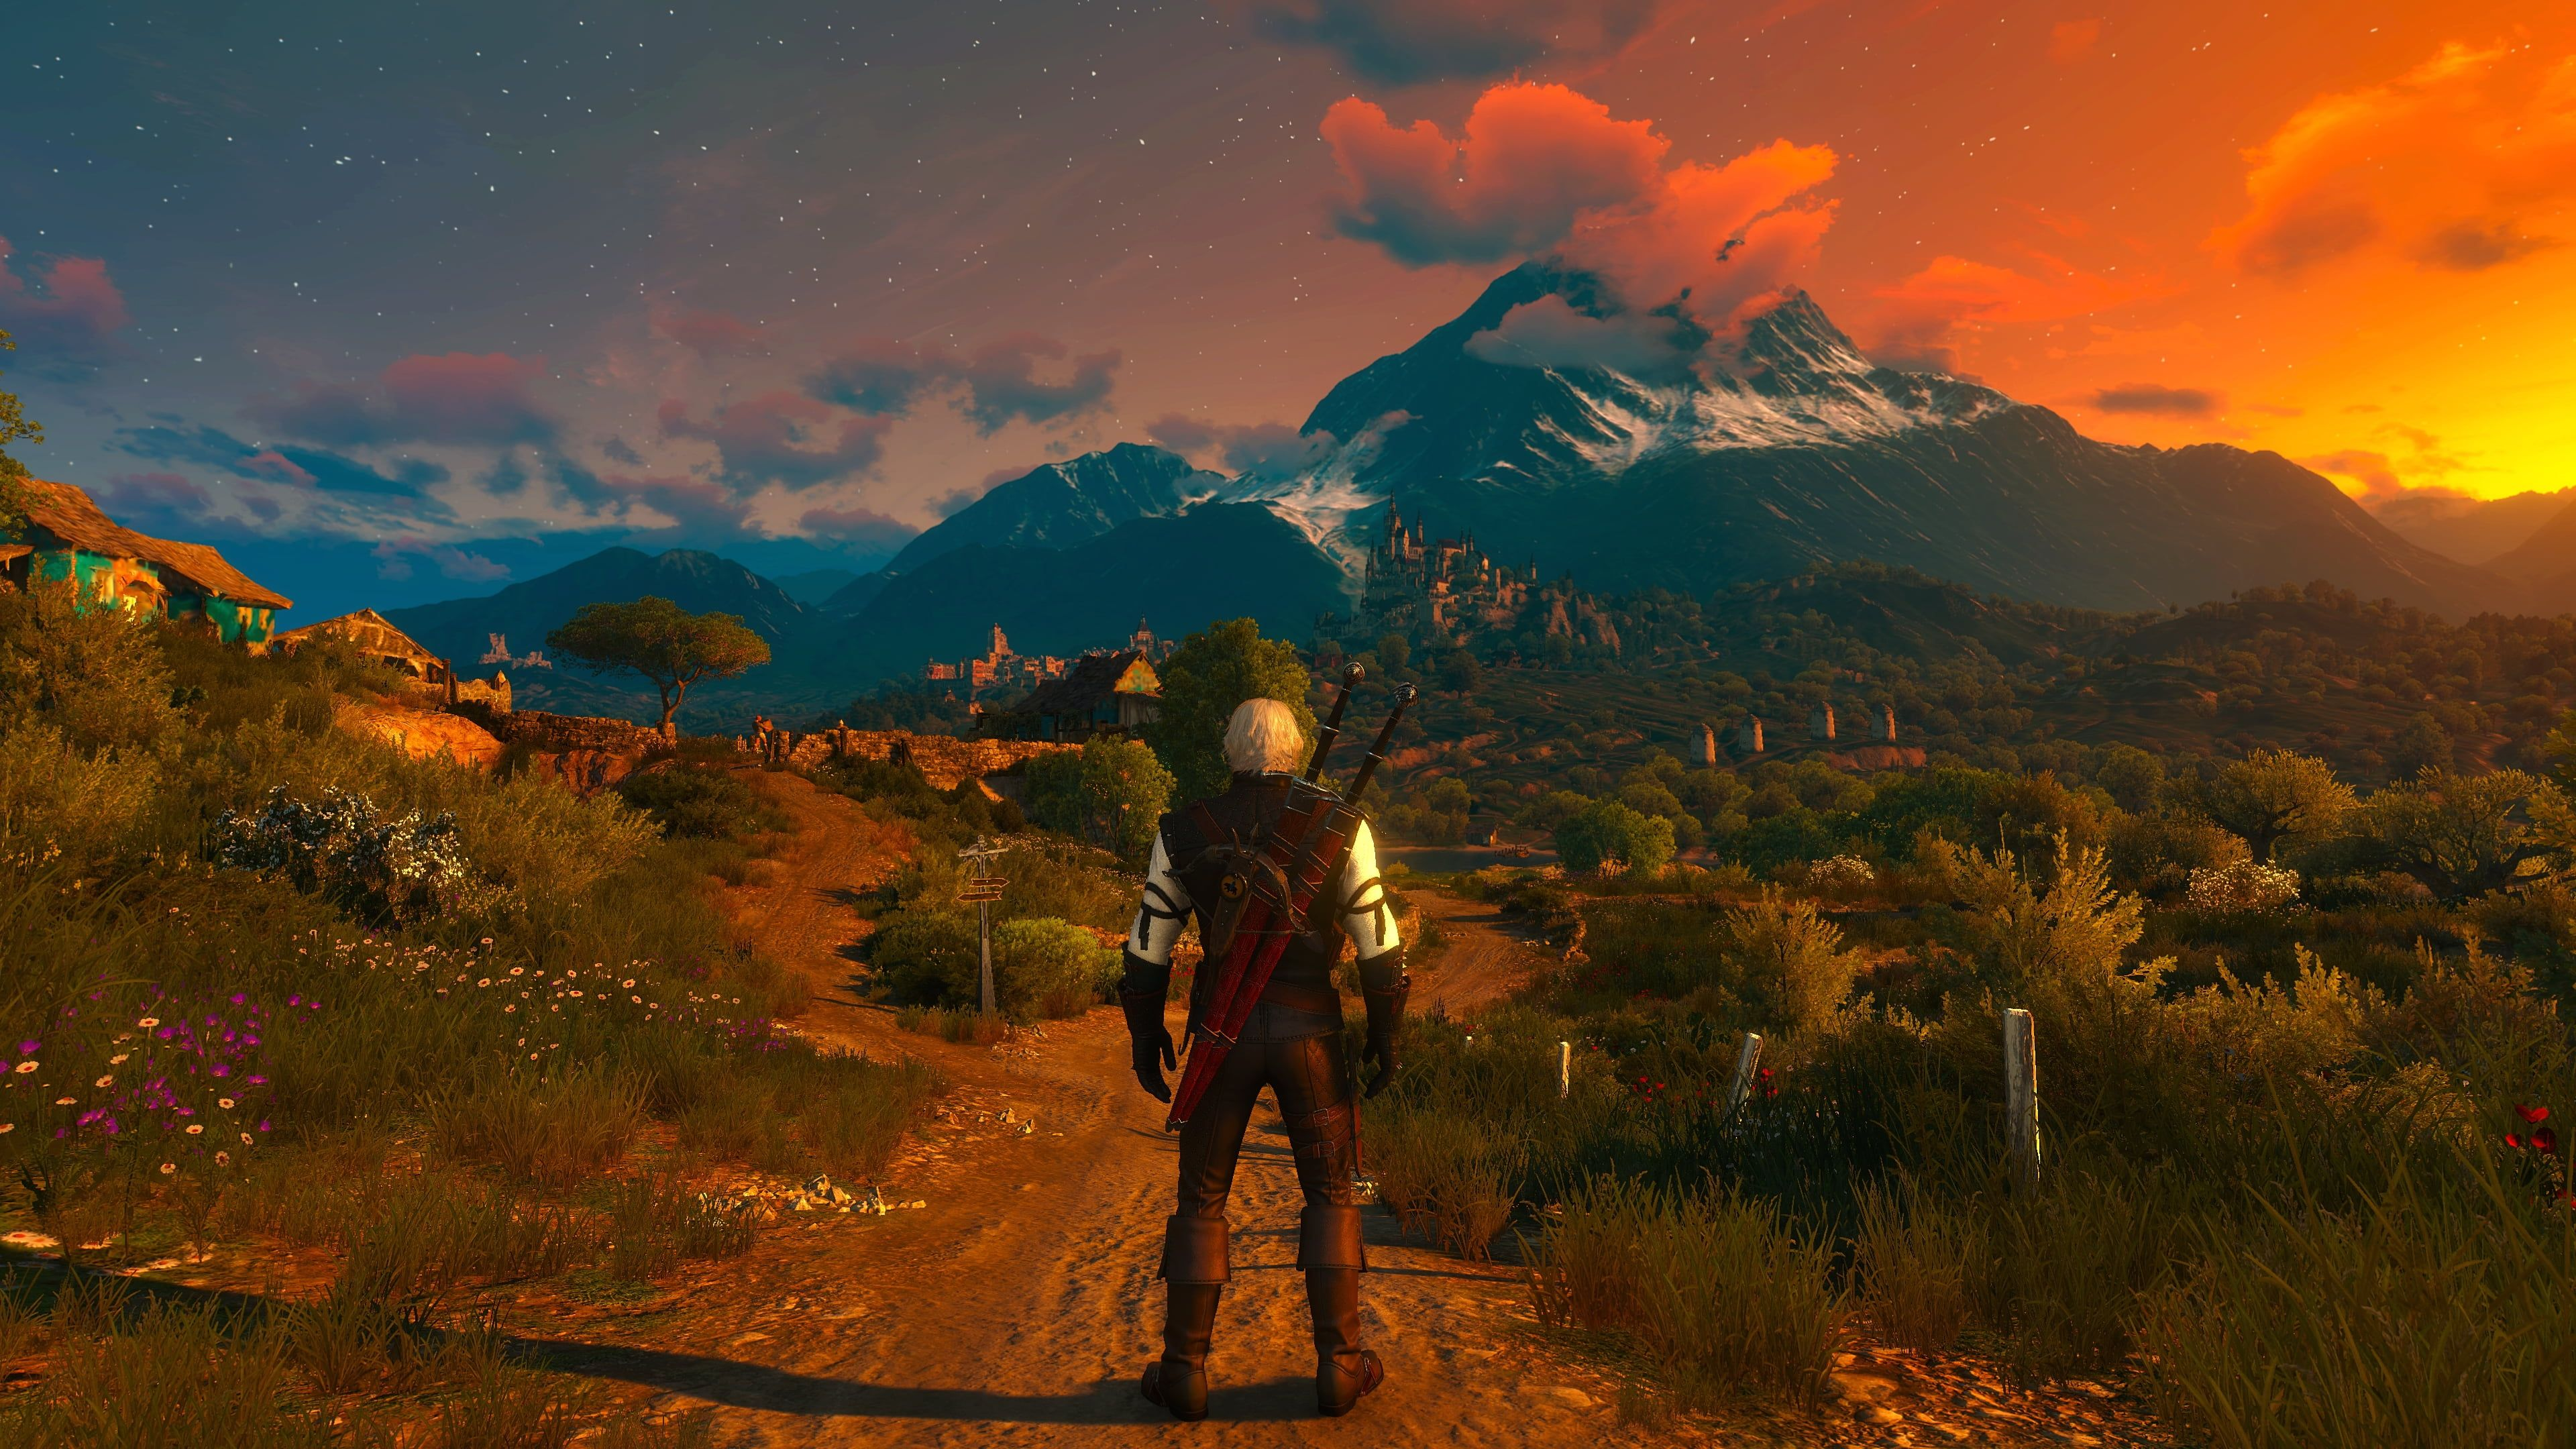 Wallpaper The Witcher The Witcher 3 Blood And Wine 3840x2160